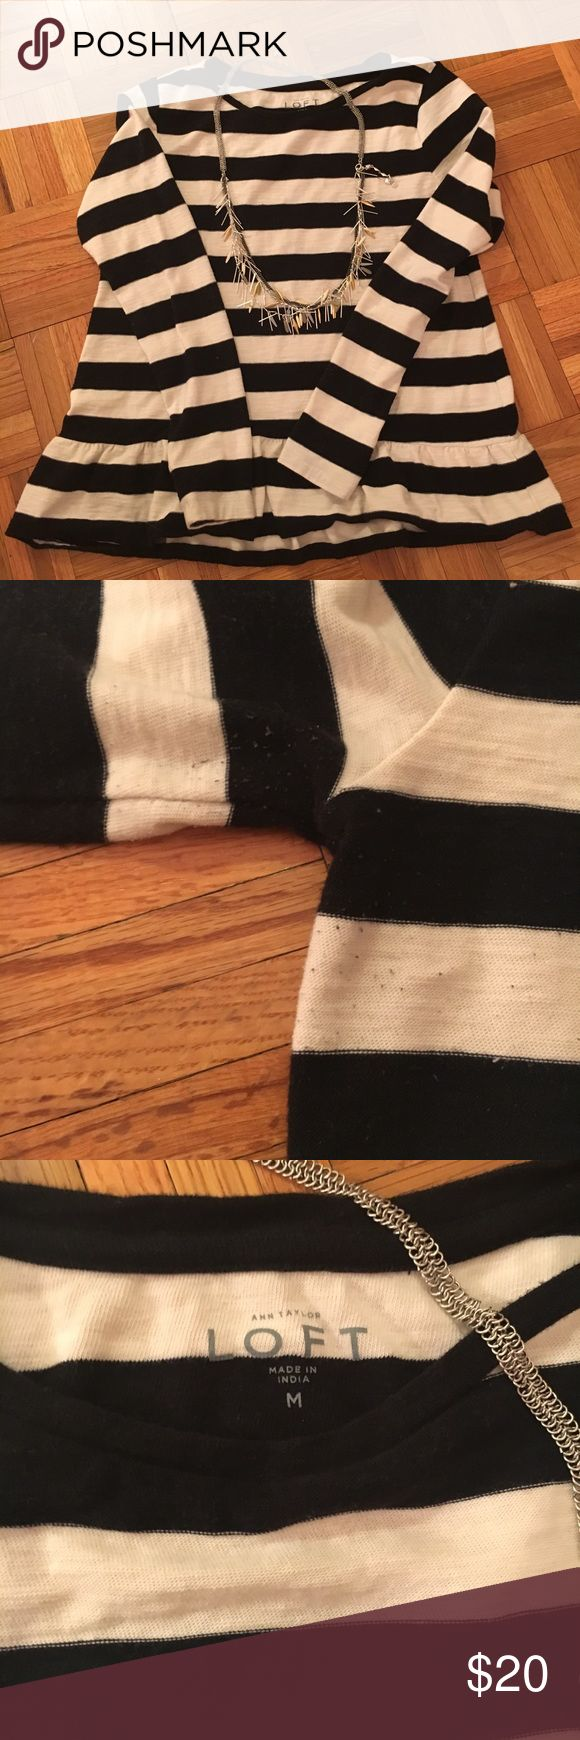 Loft black/white peplum top This is a heavy cotton that is a light sweater material. Worn once this black and white striped sweater/shirt is cute, comfortable and versatile. I'd say it's TTS, I almost always wear mediums and this one is a comfortable fit, but not tight.  The peplum gives this top an extra little something LOFT Tops Tees - Long Sleeve